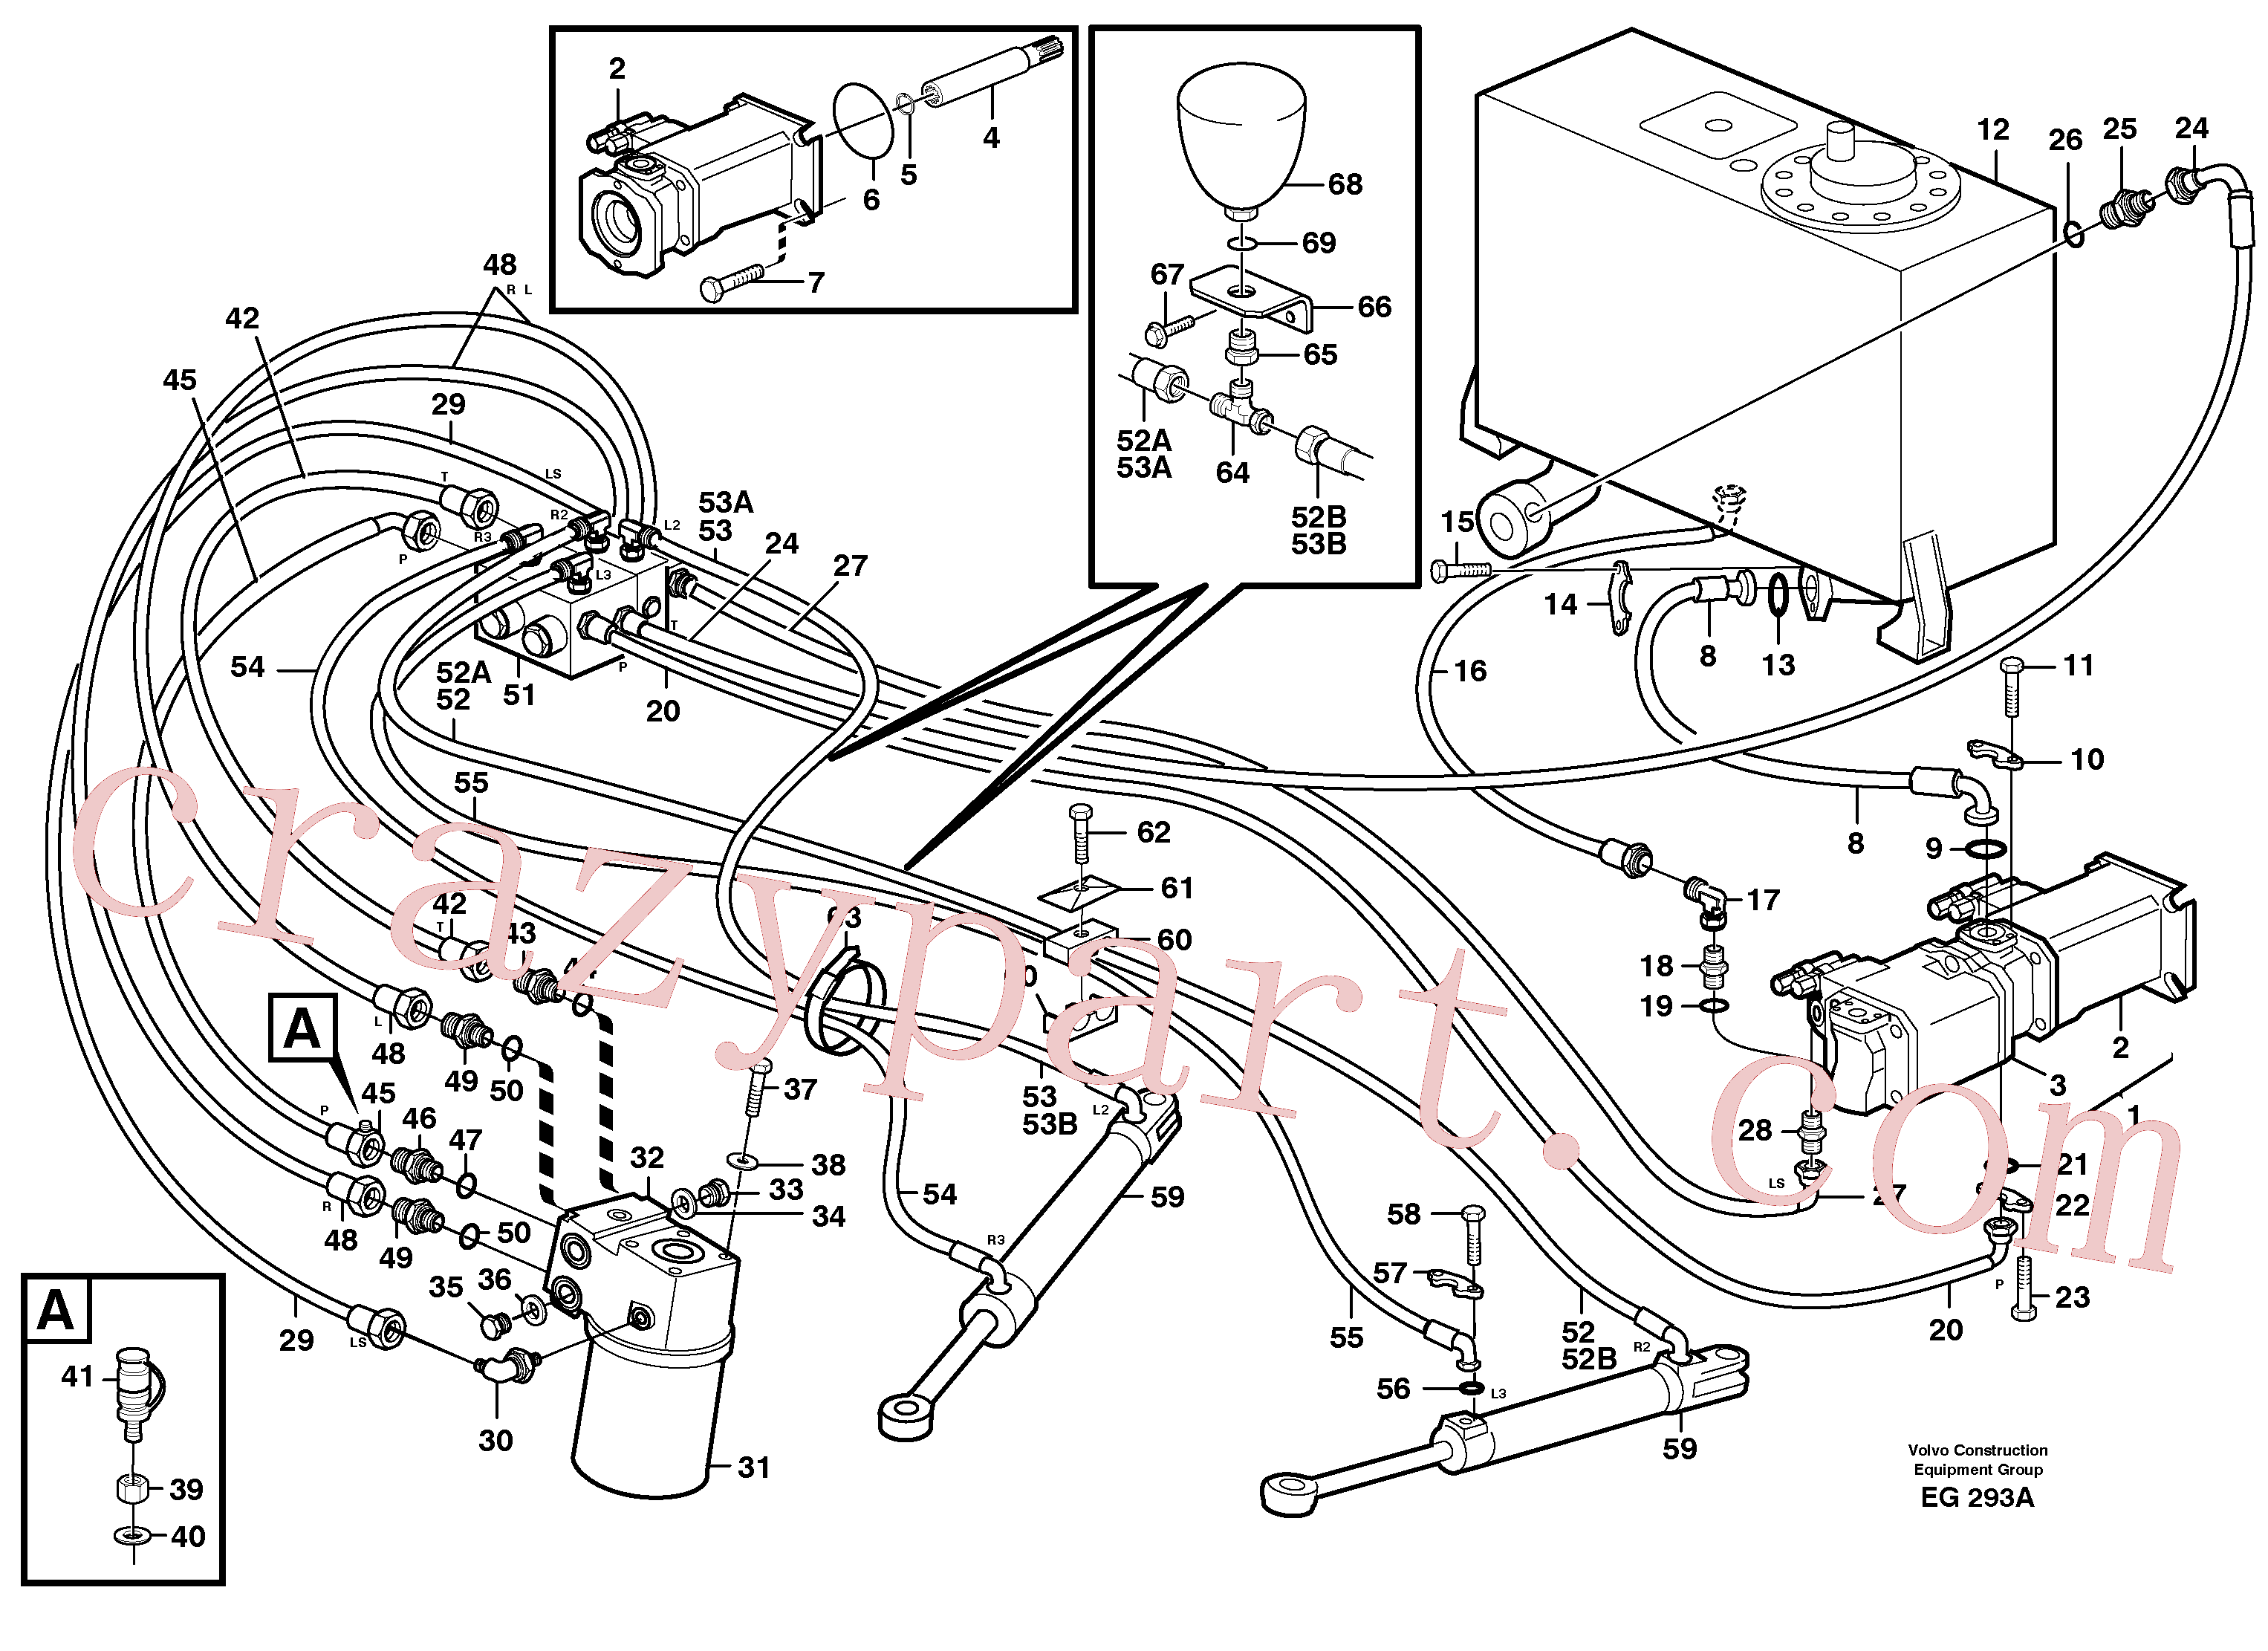 PJ4040038 for Volvo Steering system(EG293A assembly)